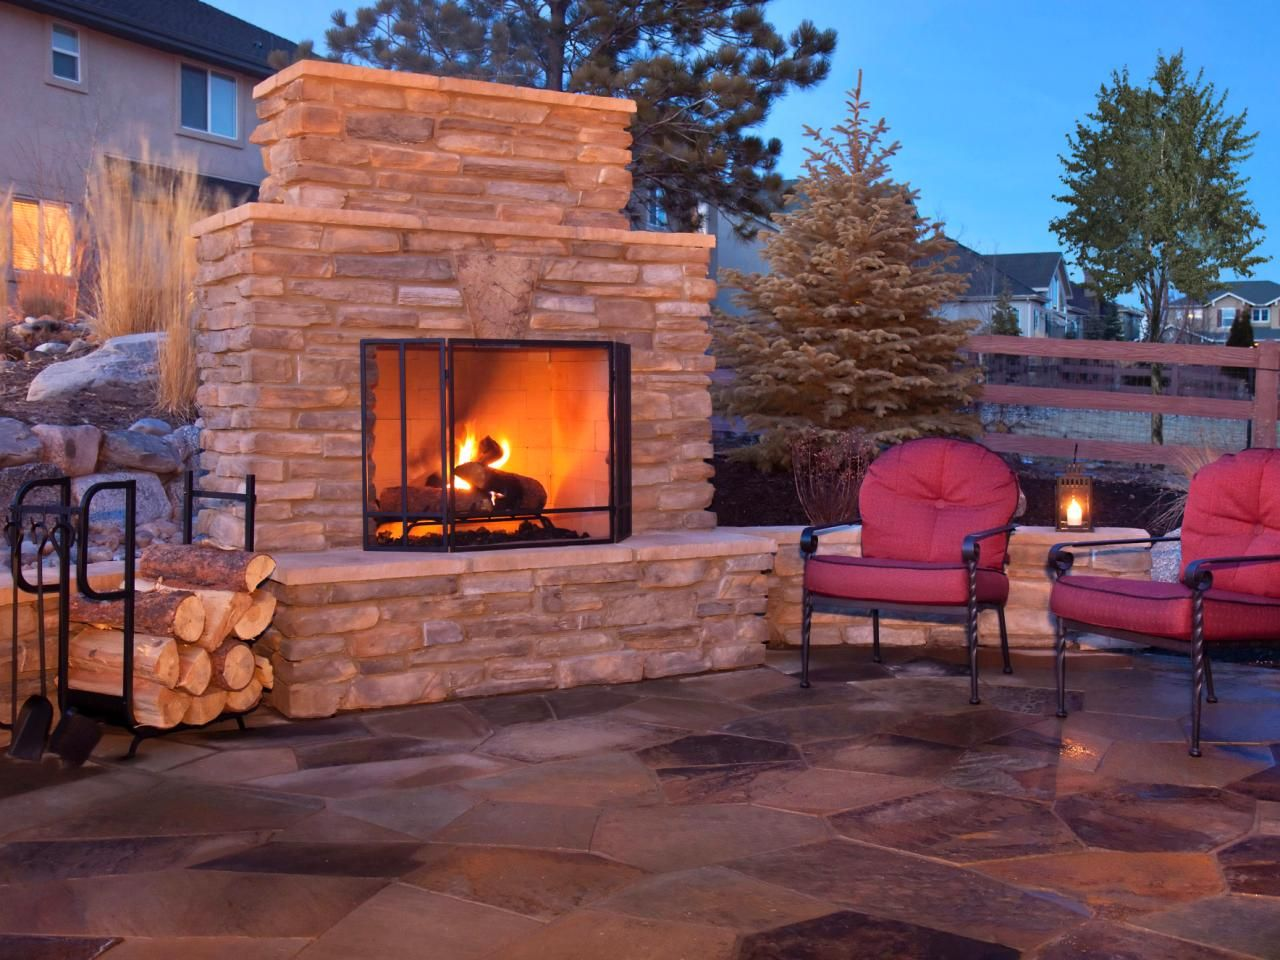 how to plan for building an outdoor fireplace dream home yard rh pinterest com